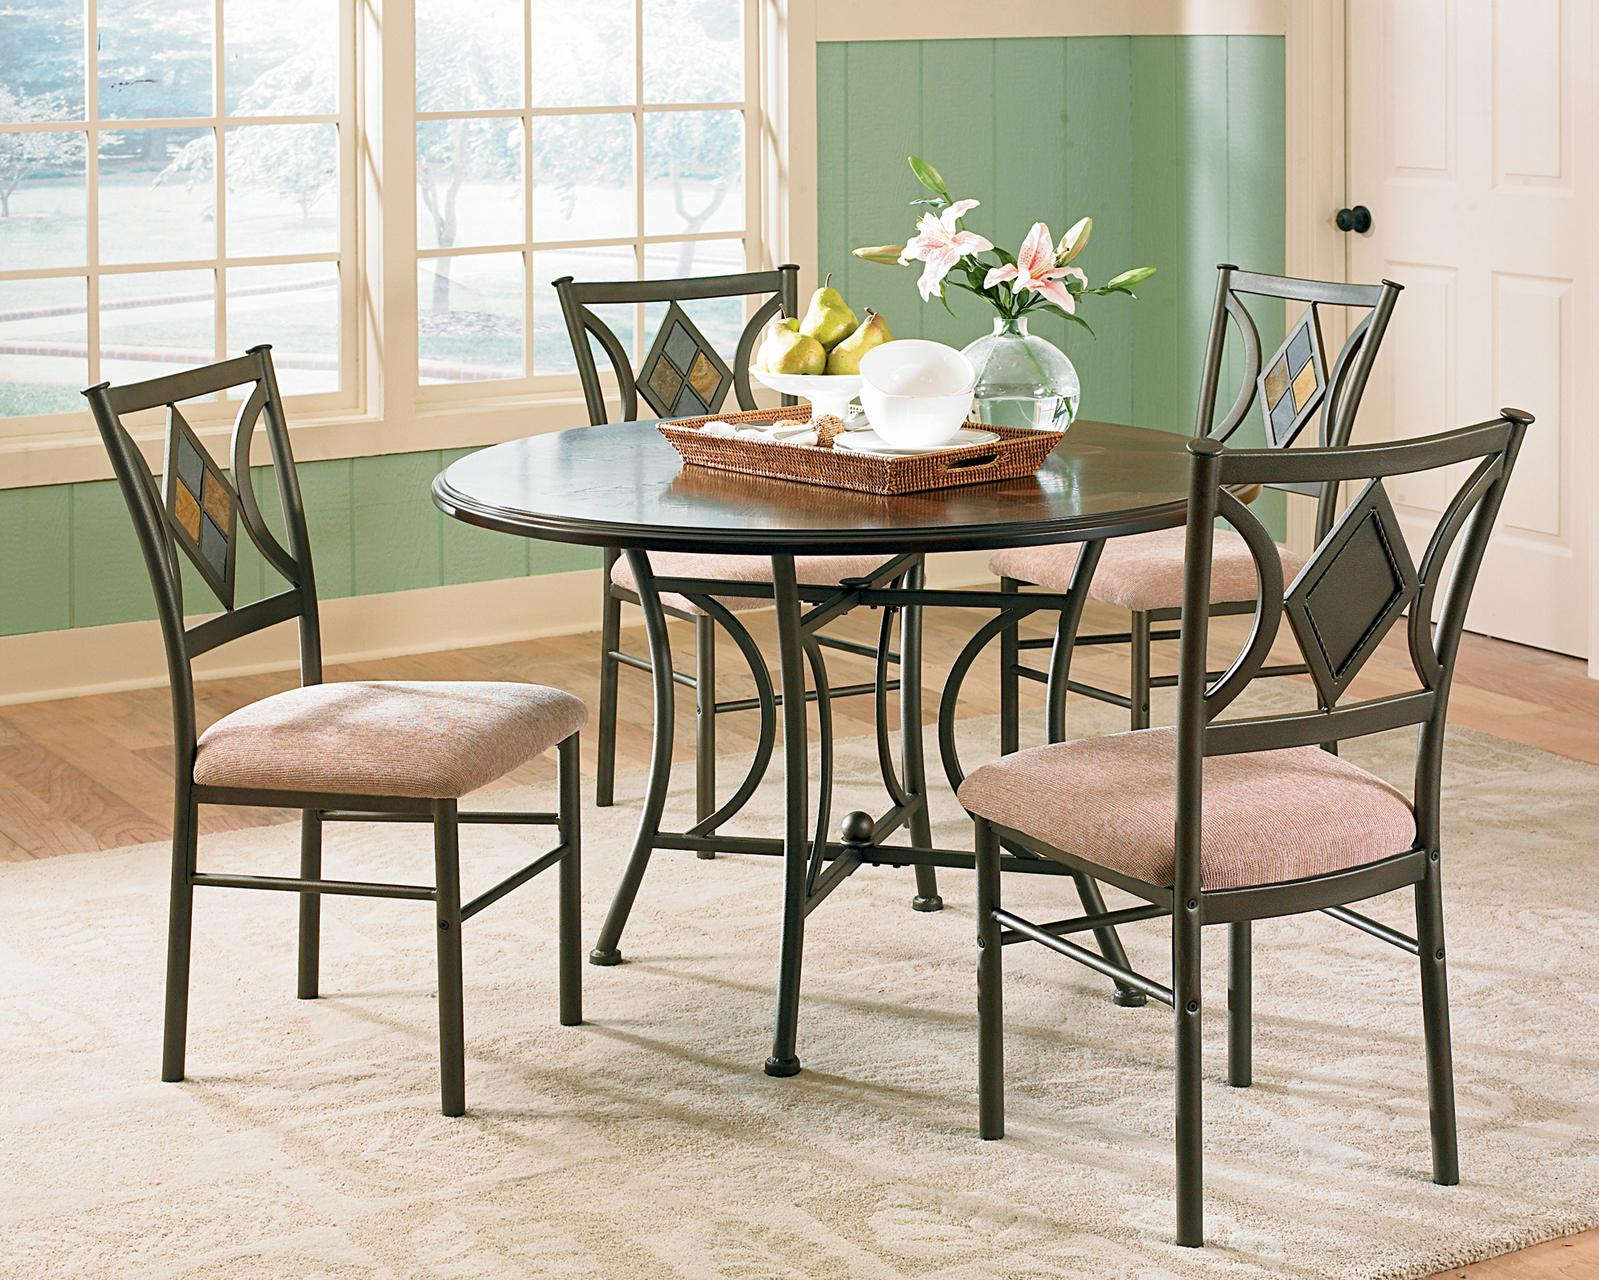 Talston Talston 5-Piece Dining Table Set by Steve Silver at Morris Home